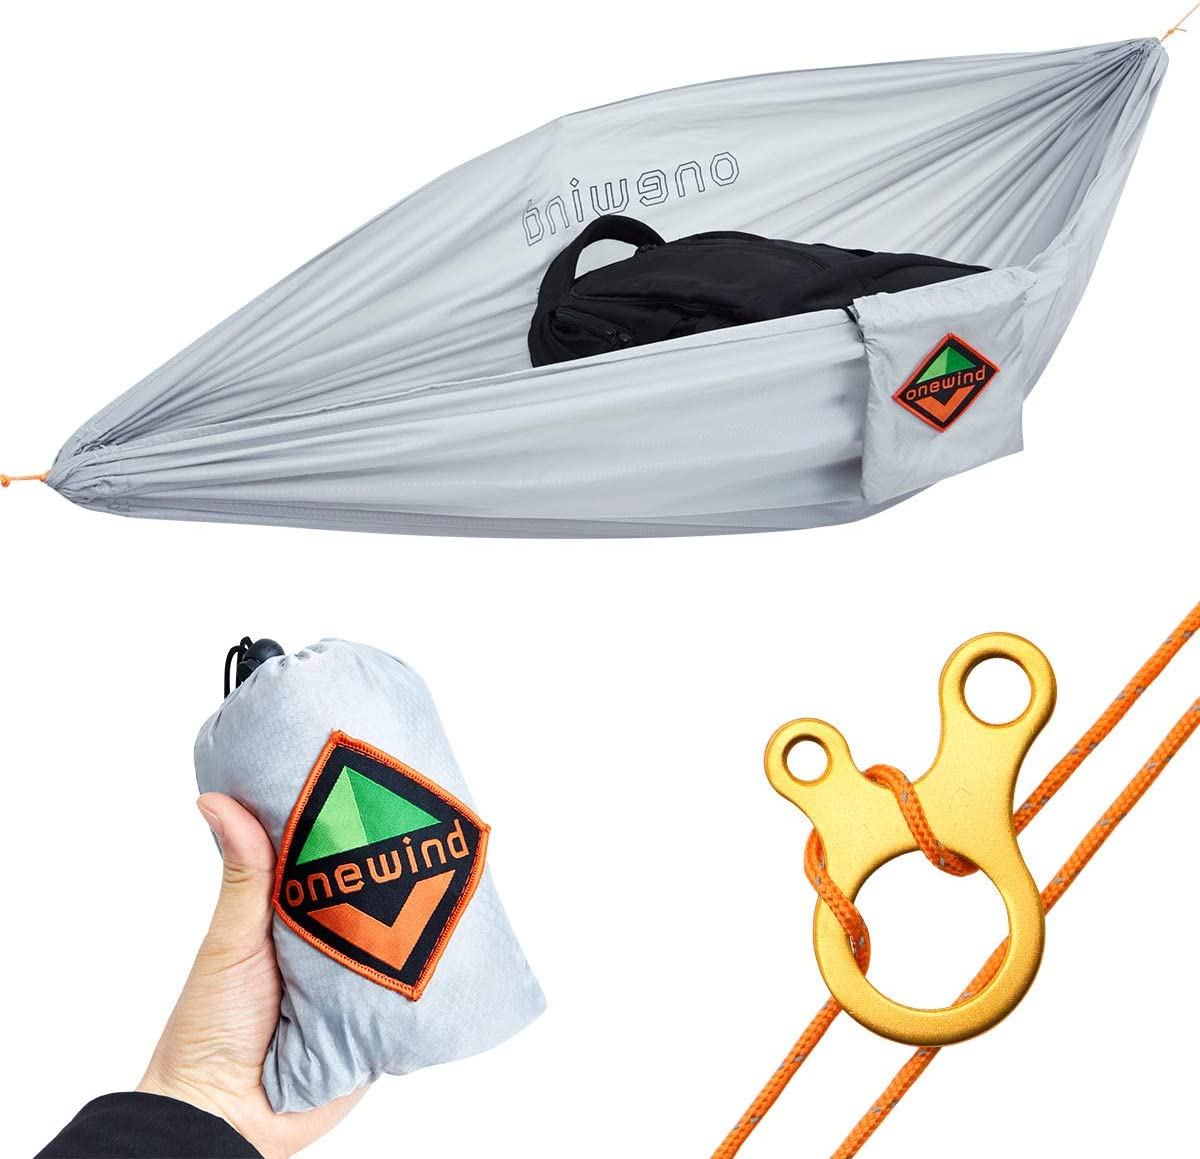 onewind Gear Hammock Mini Storage Camping Accessories Hammock Portable Outfitters Underbelly Gear Sling Hammock